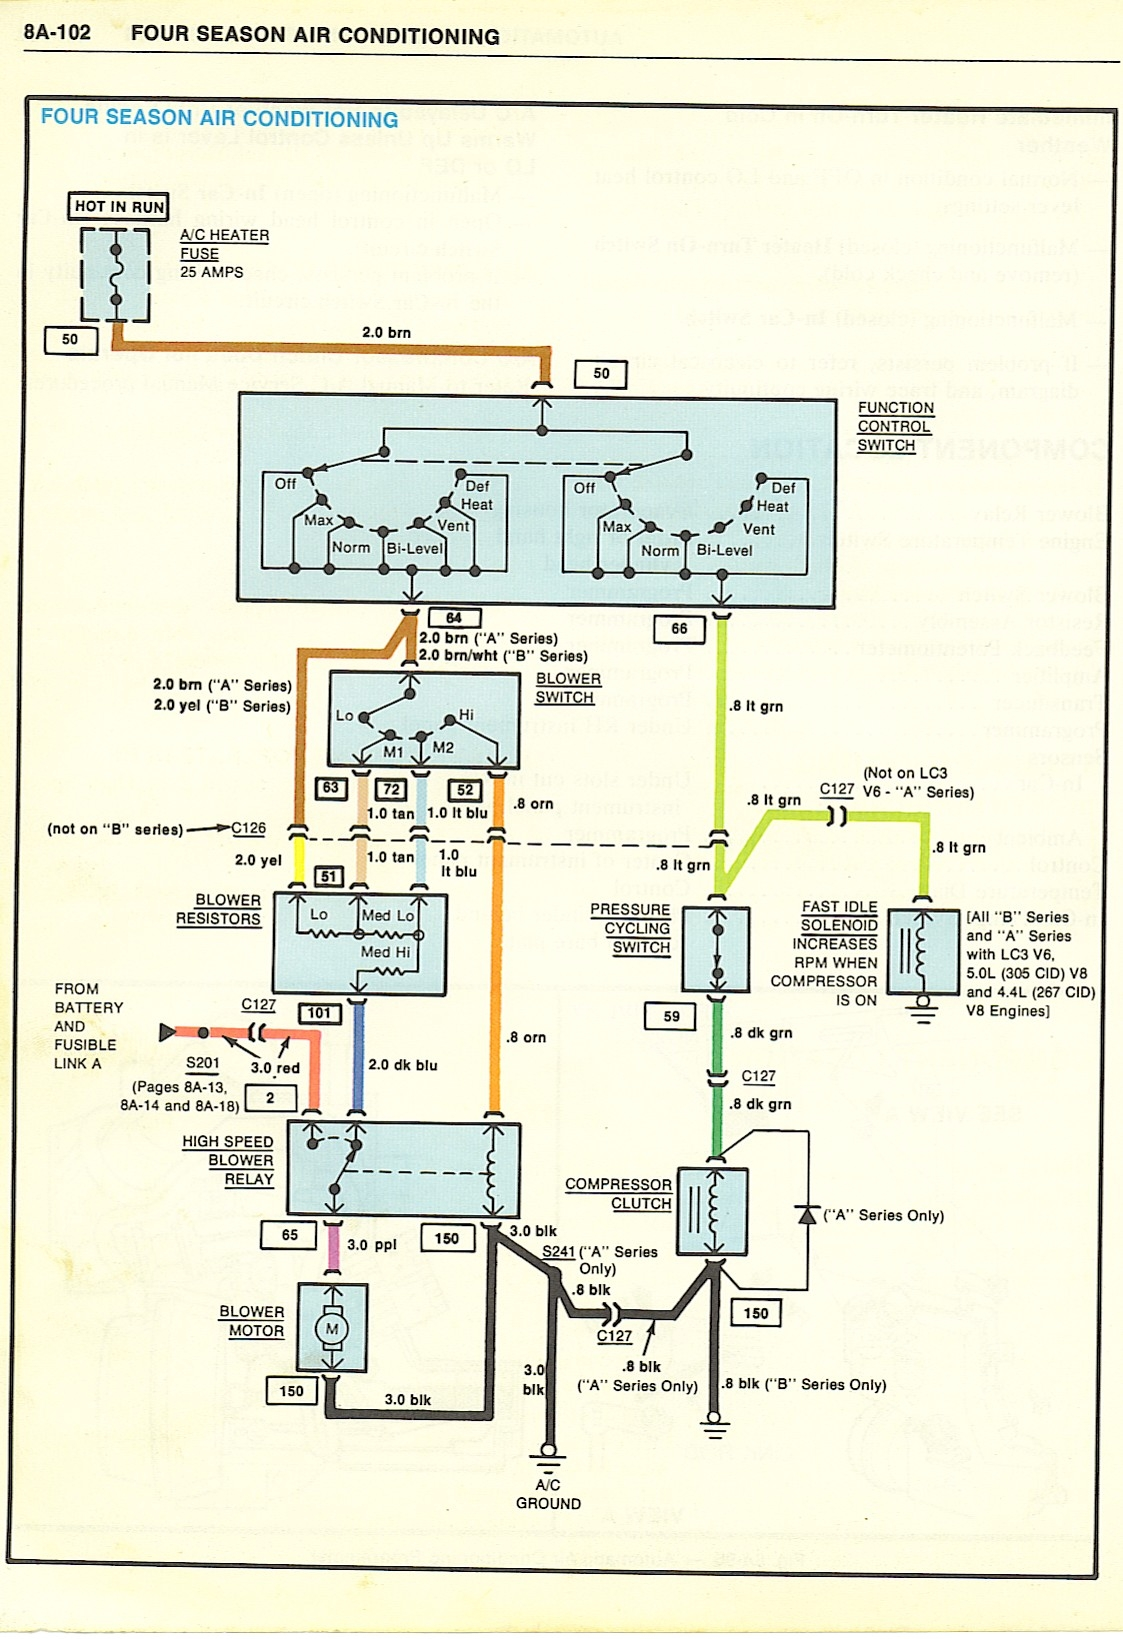 1968 FourSeasonAirConditioner chevy diagrams 1967 chevelle wiring diagram pdf at soozxer.org